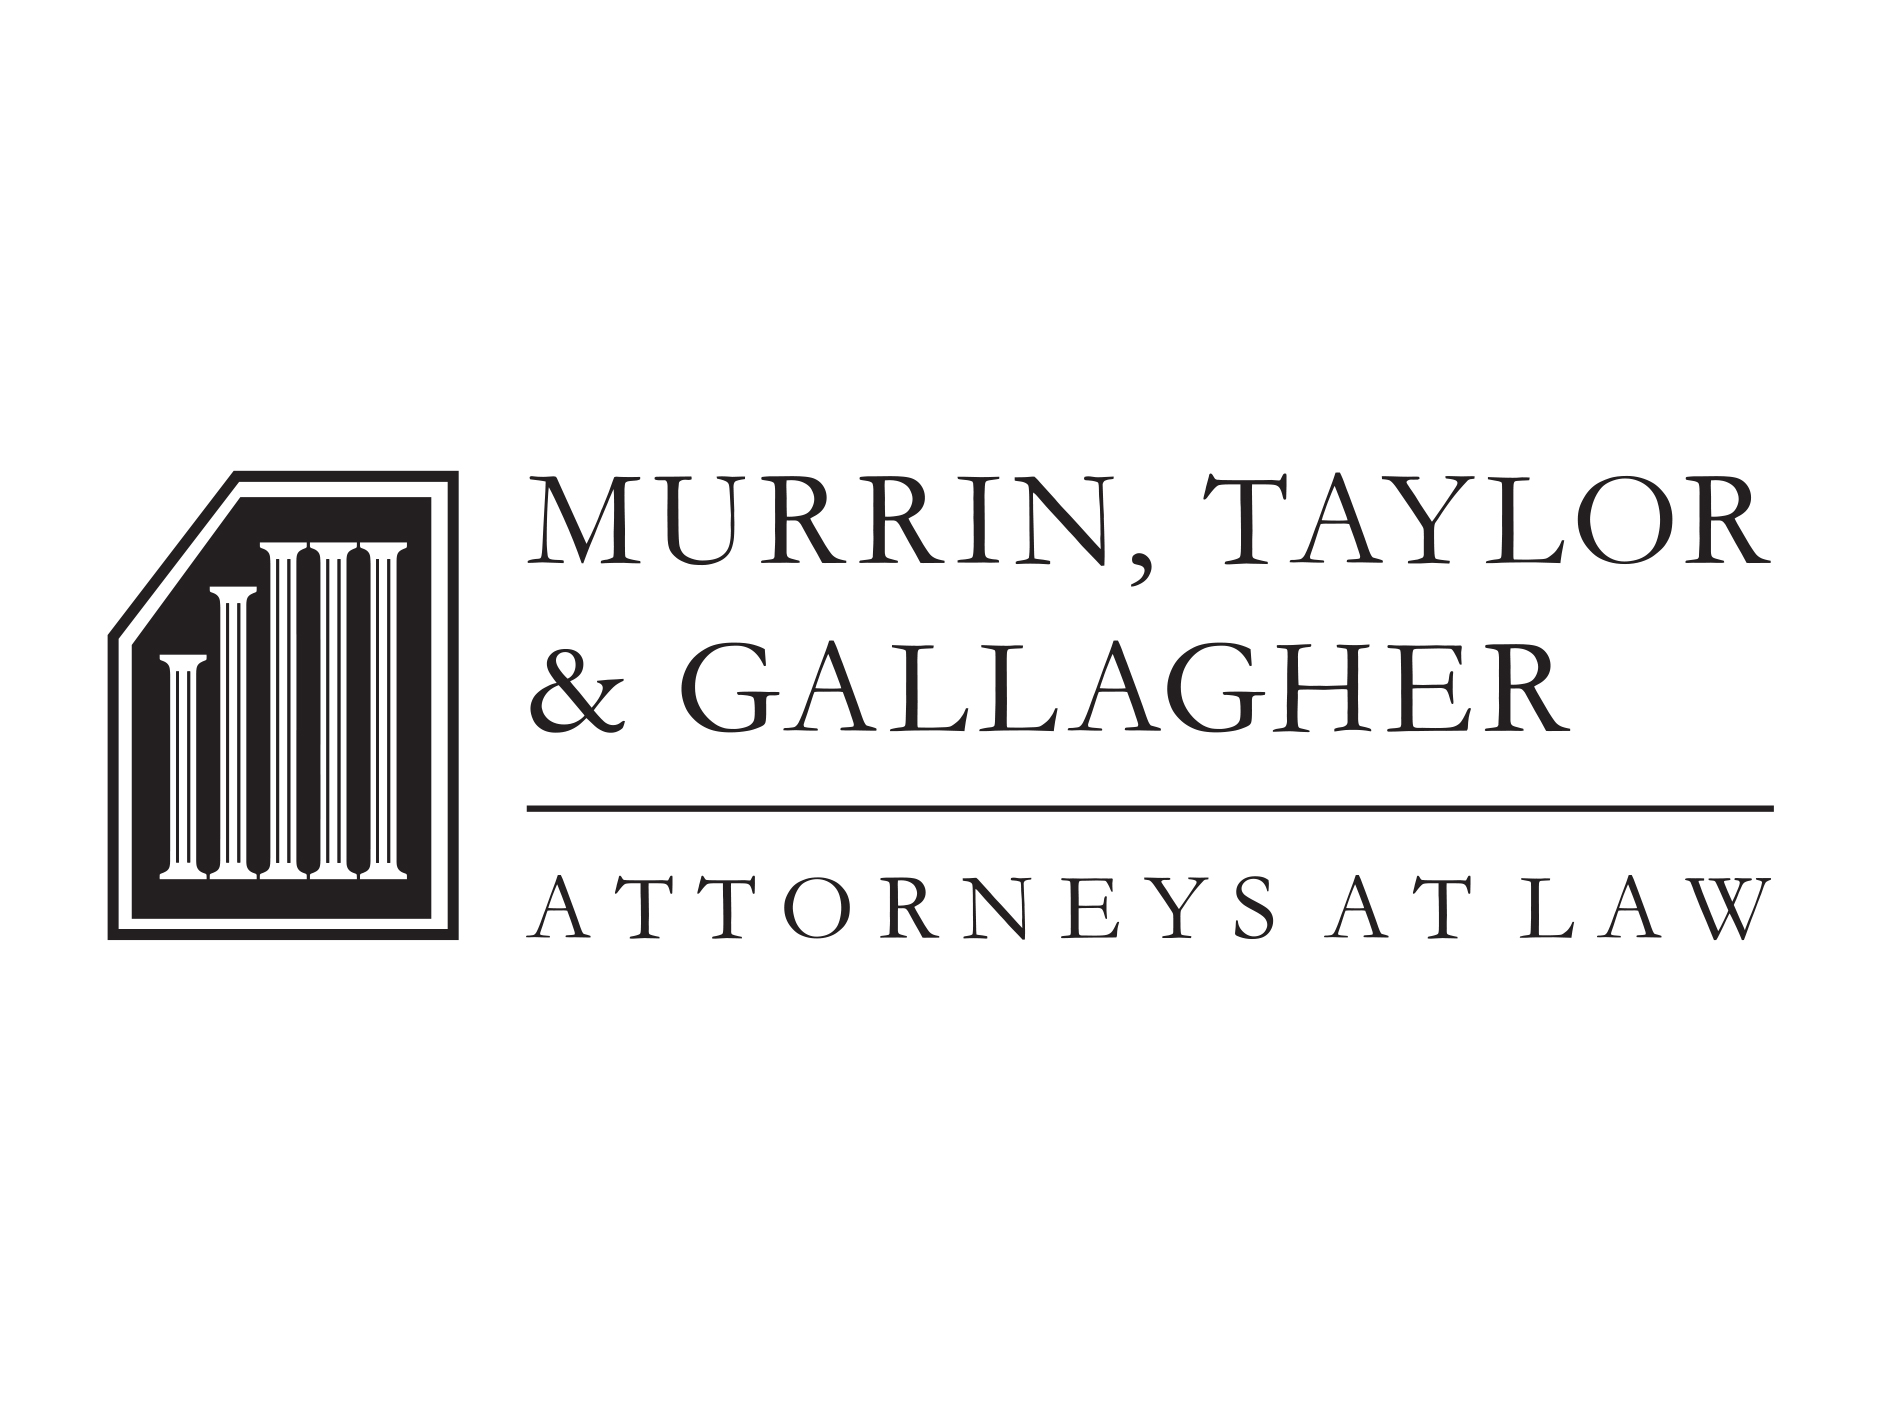 murrin taylor gallagher logo